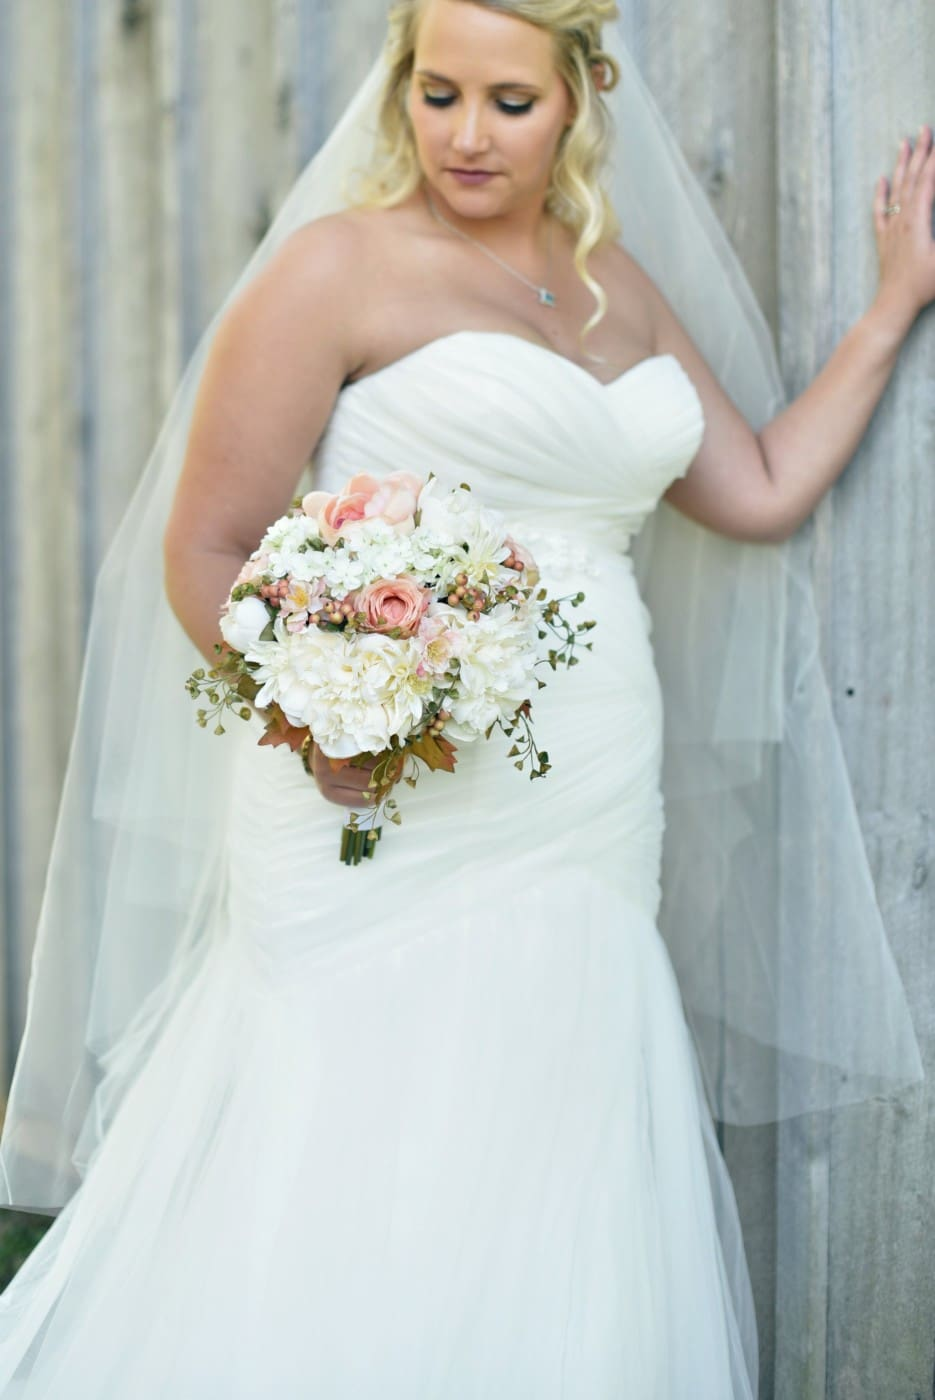 View More: http://ashleysphotodesigns.pass.us/chamberlain3